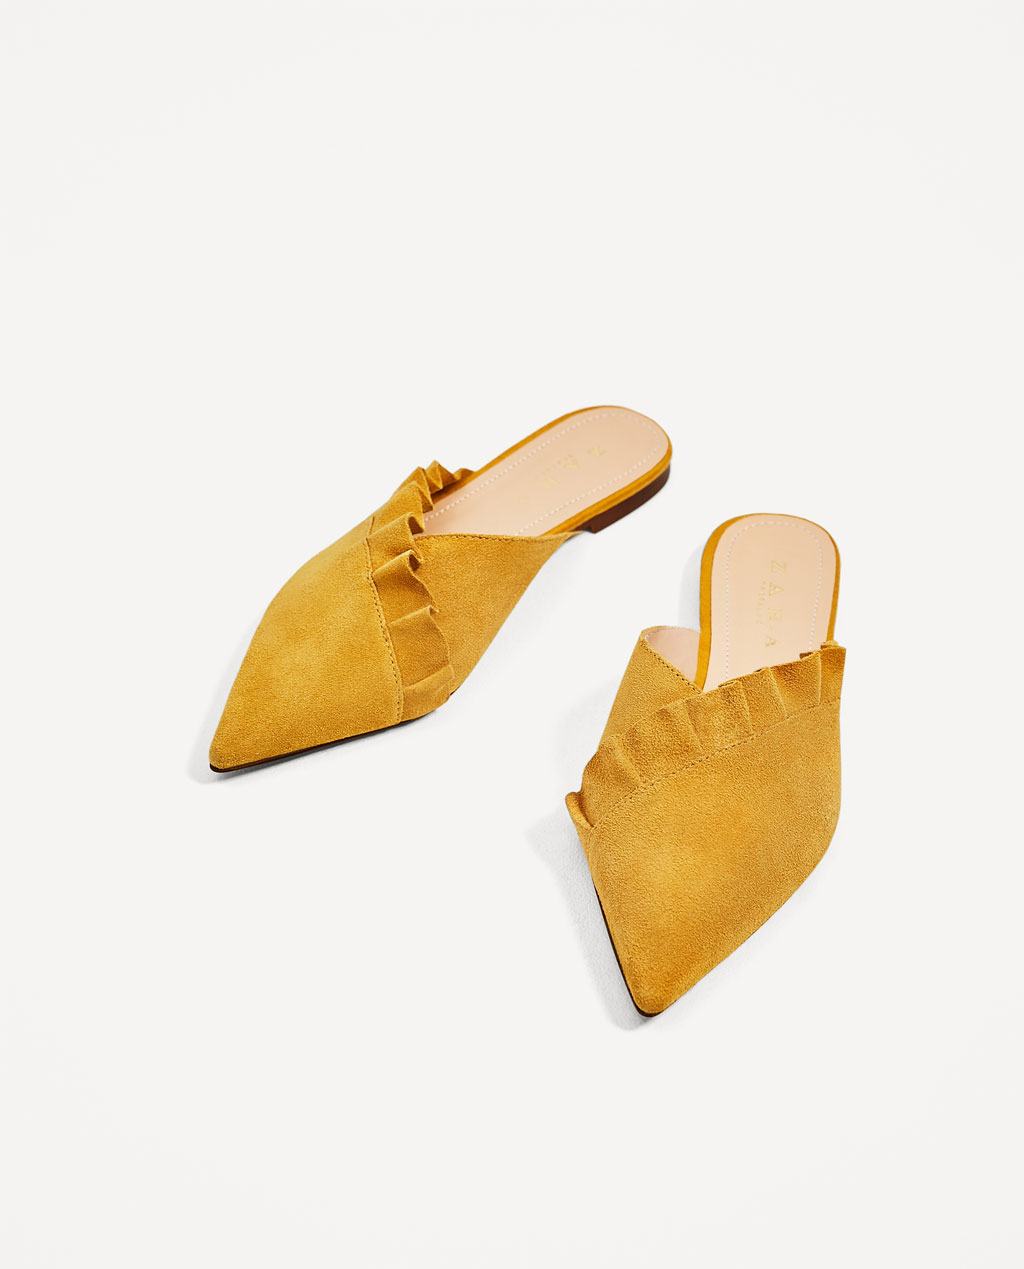 The season of stylish flats is here! Fall shoe love: Zara Leather Mules With Frill | glitterinc.com | @glitterinc